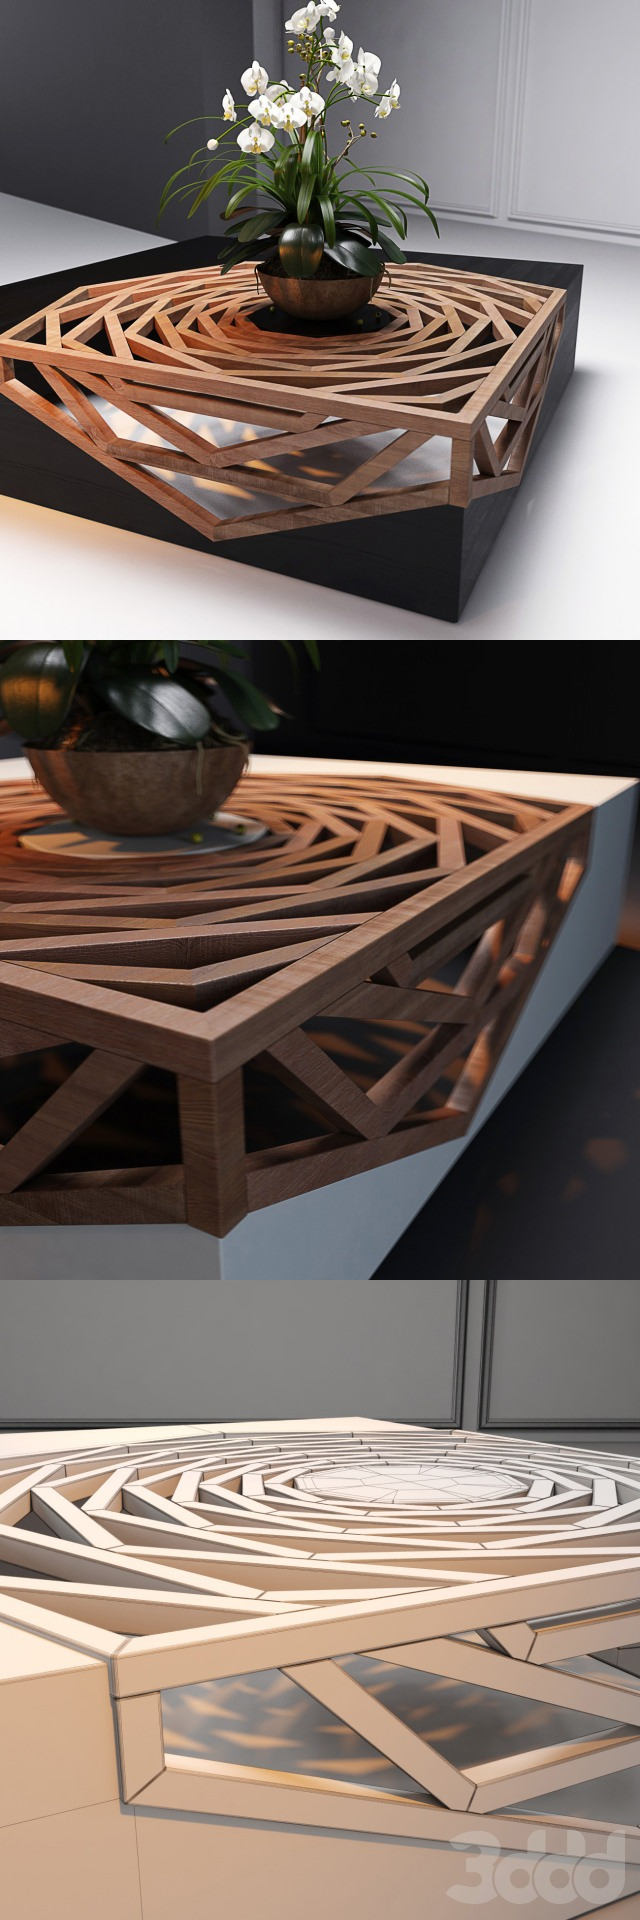 Gorgeous design wood coffee table gift ideas creative for Creative design table